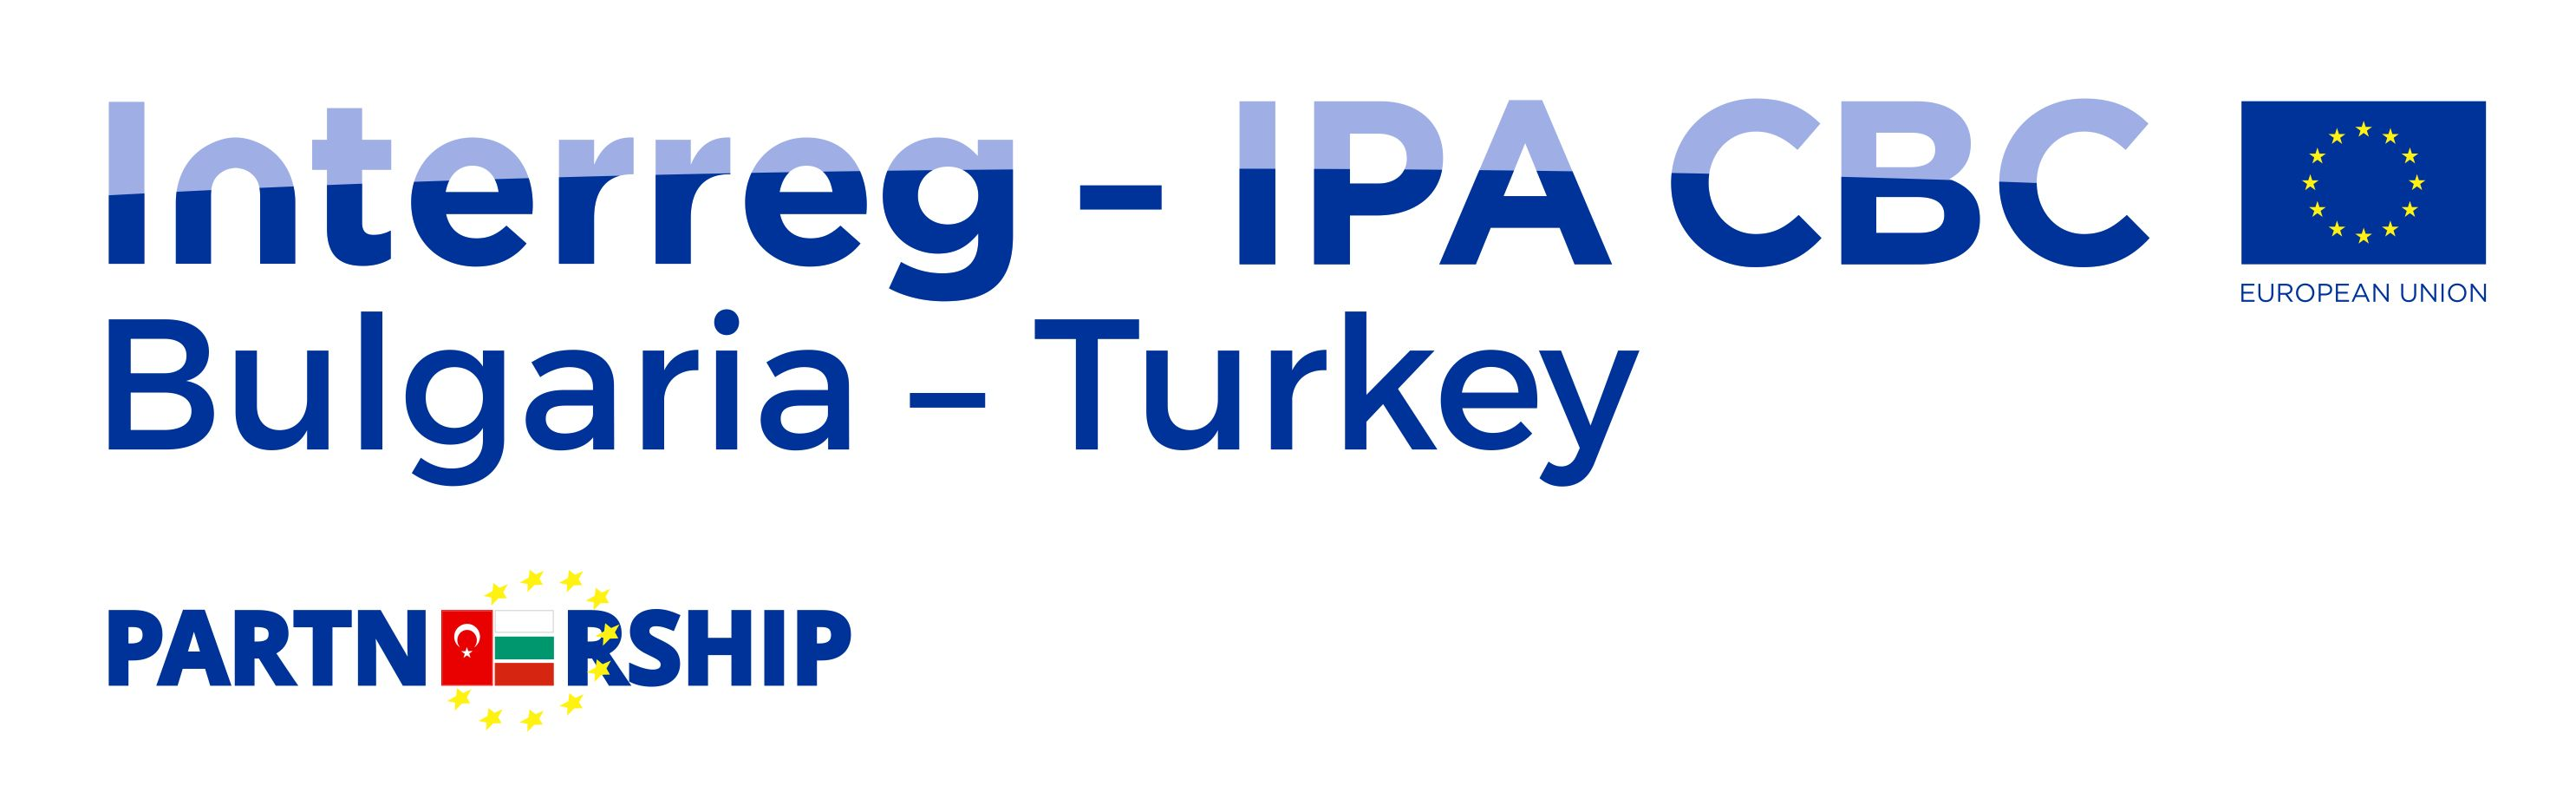 Interreg-IPA CBC Bulgaria - Turkey